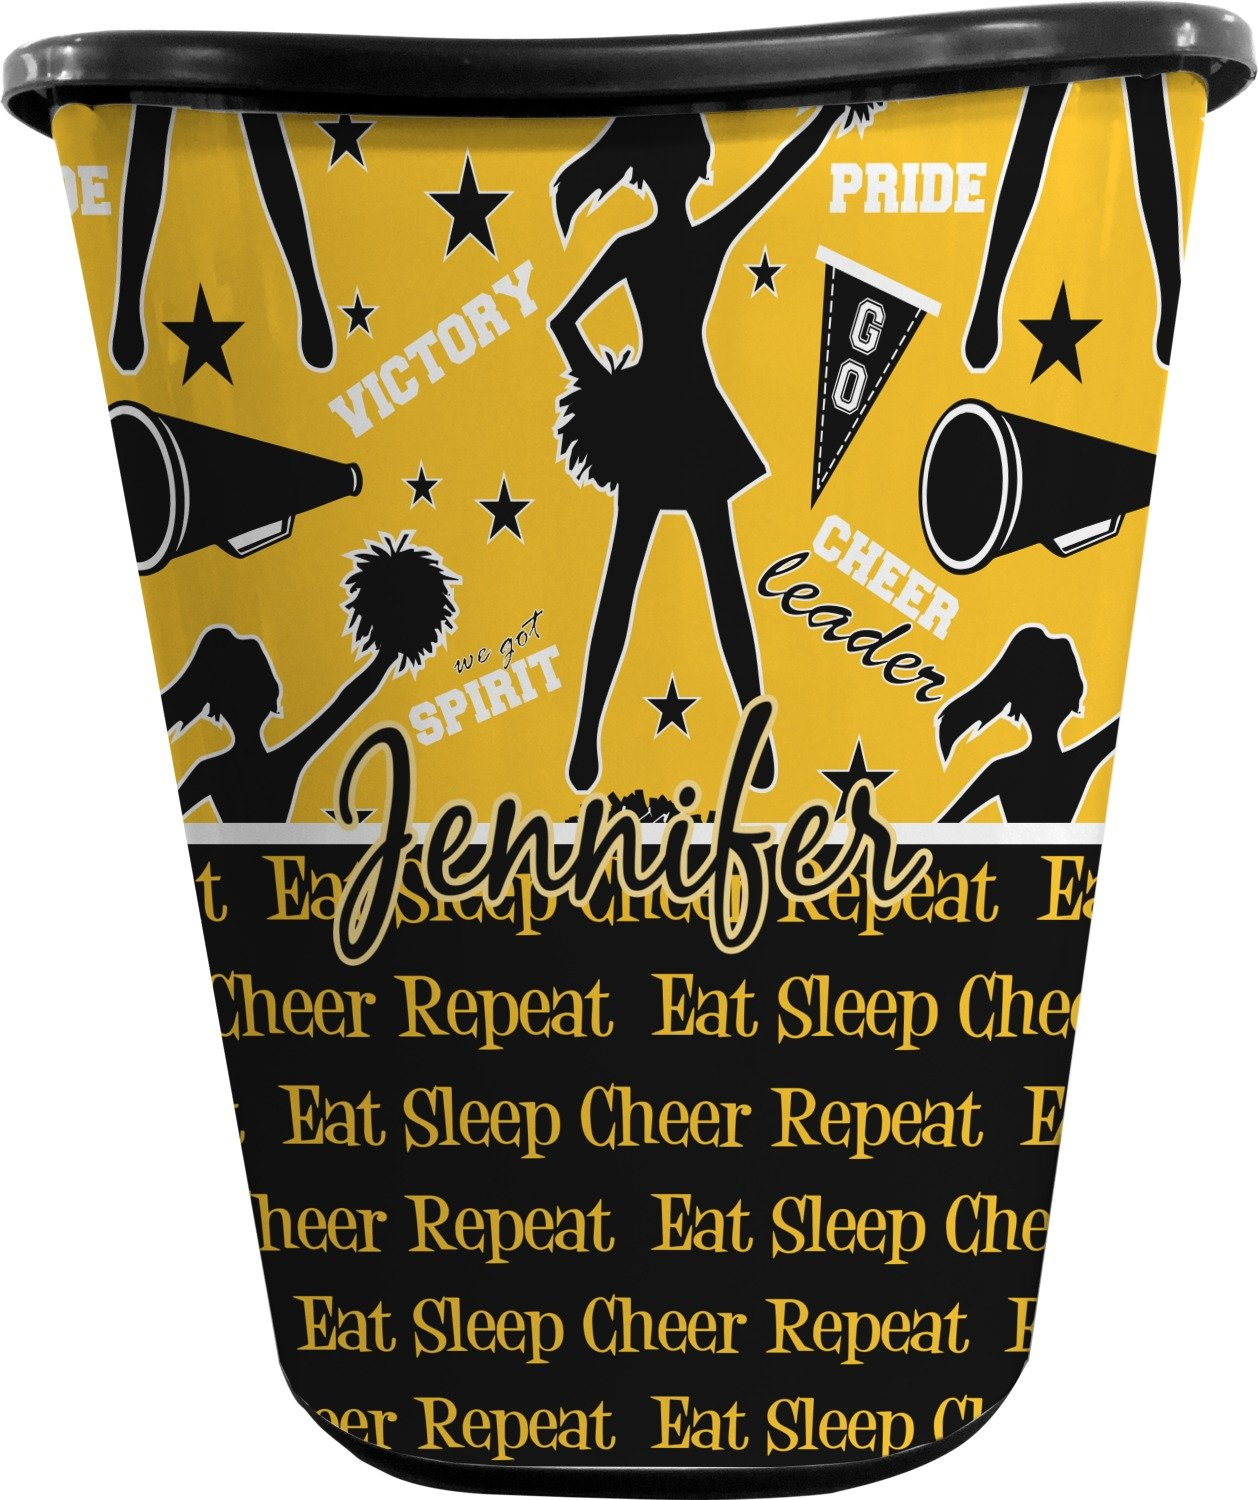 RNK Shops Cheer Waste Basket - Double Sided (Black) (Personalized)